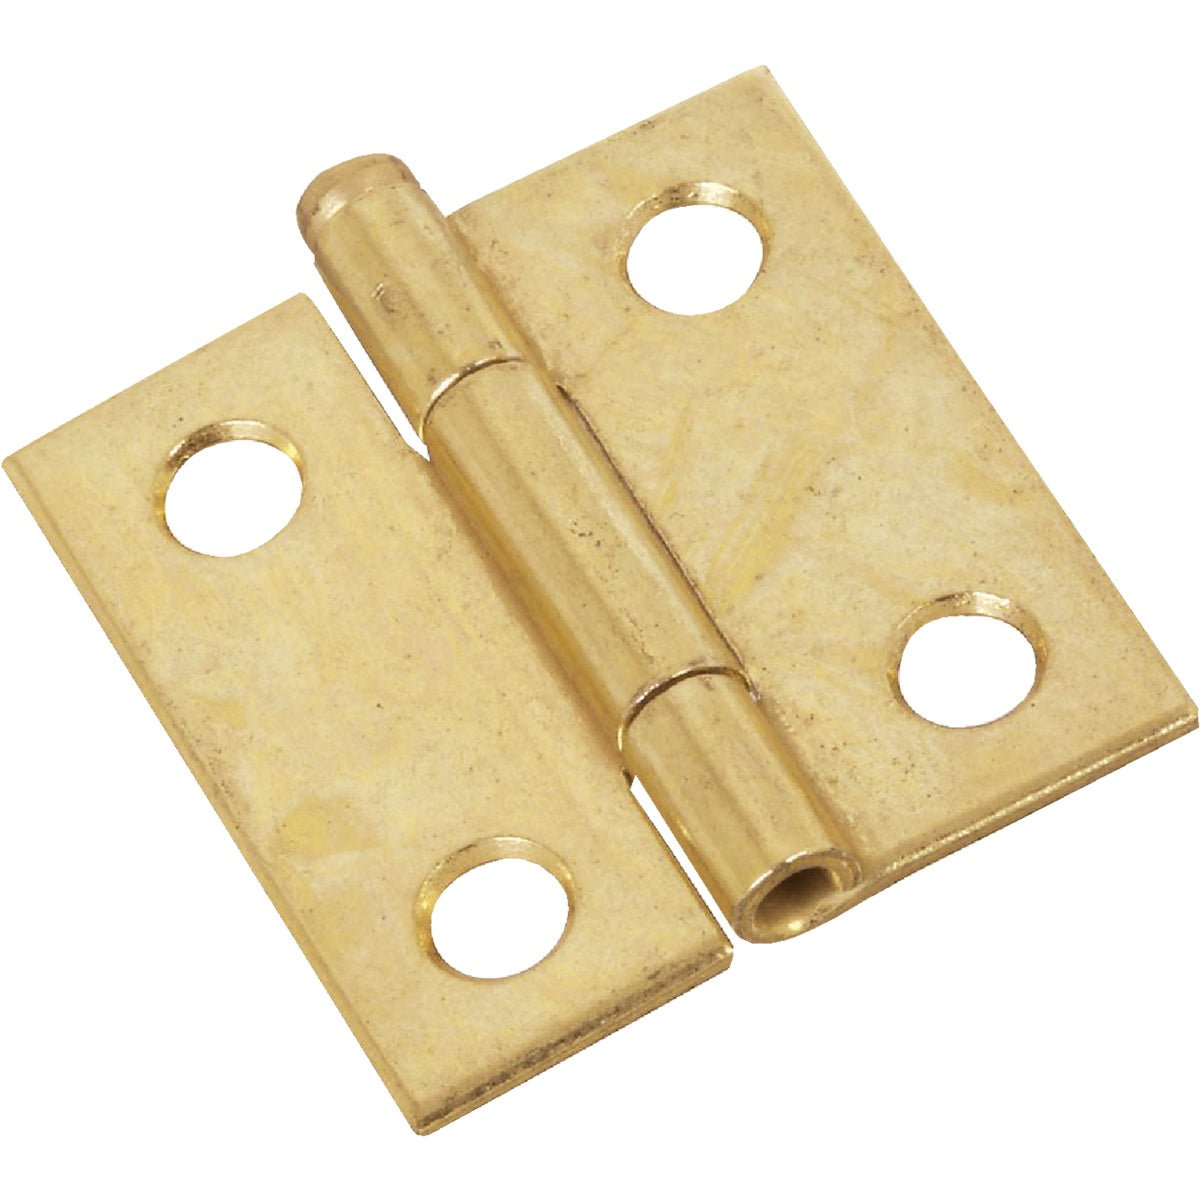 "1-1/2"" SB PIN HINGE - N141754 by National Mfg Co"